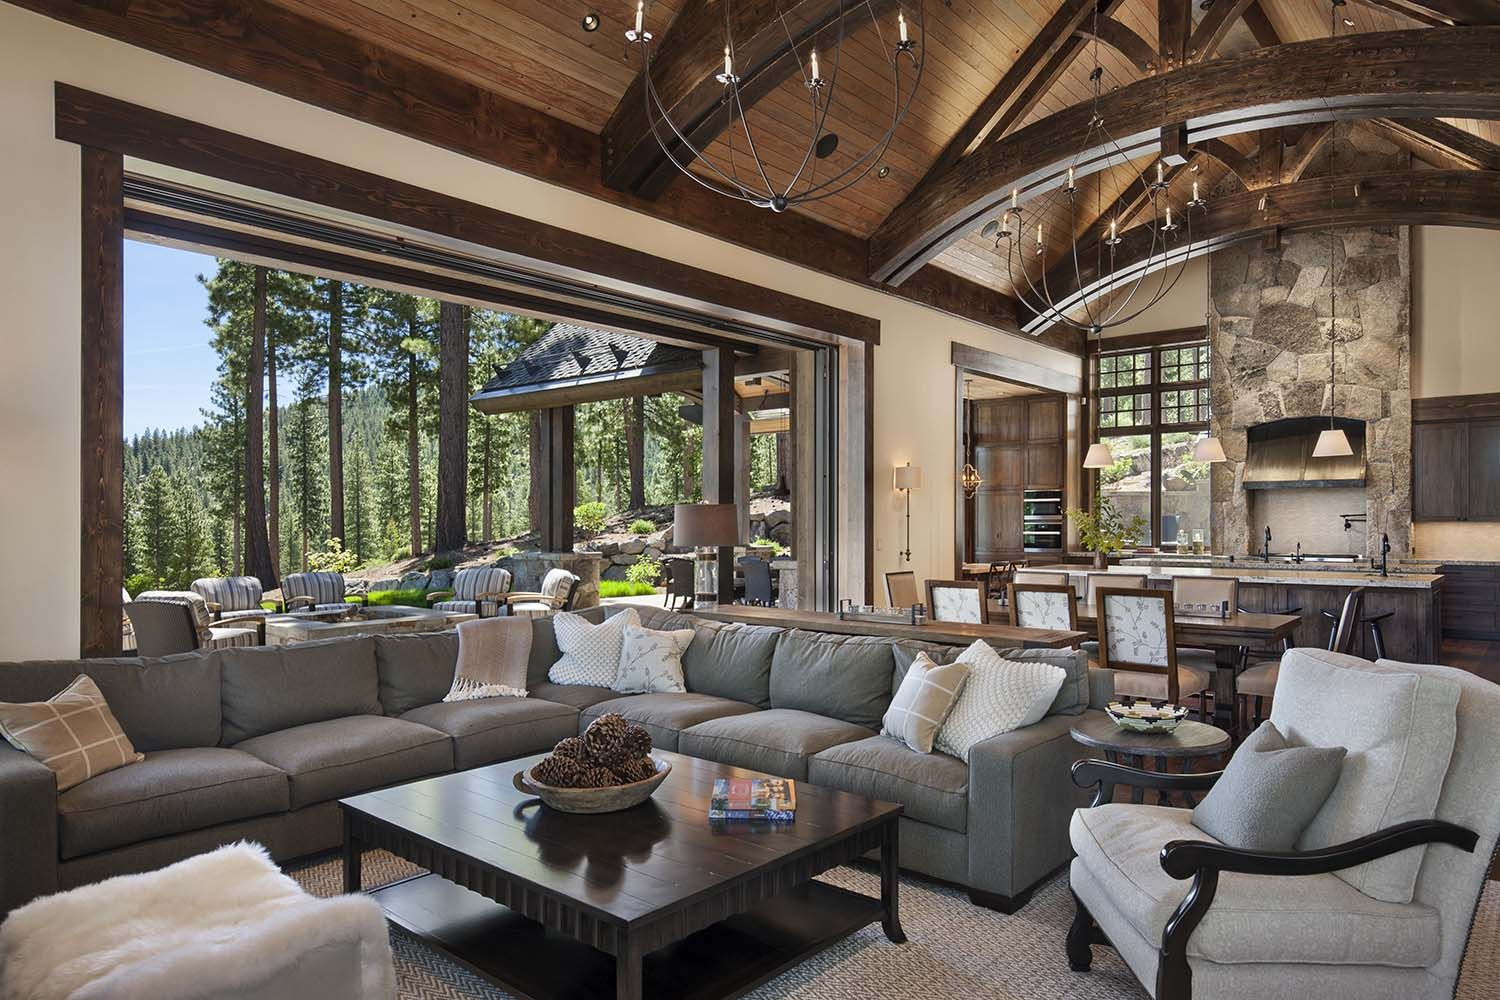 Gorgeous rustic mountain retreat with stylish interiors